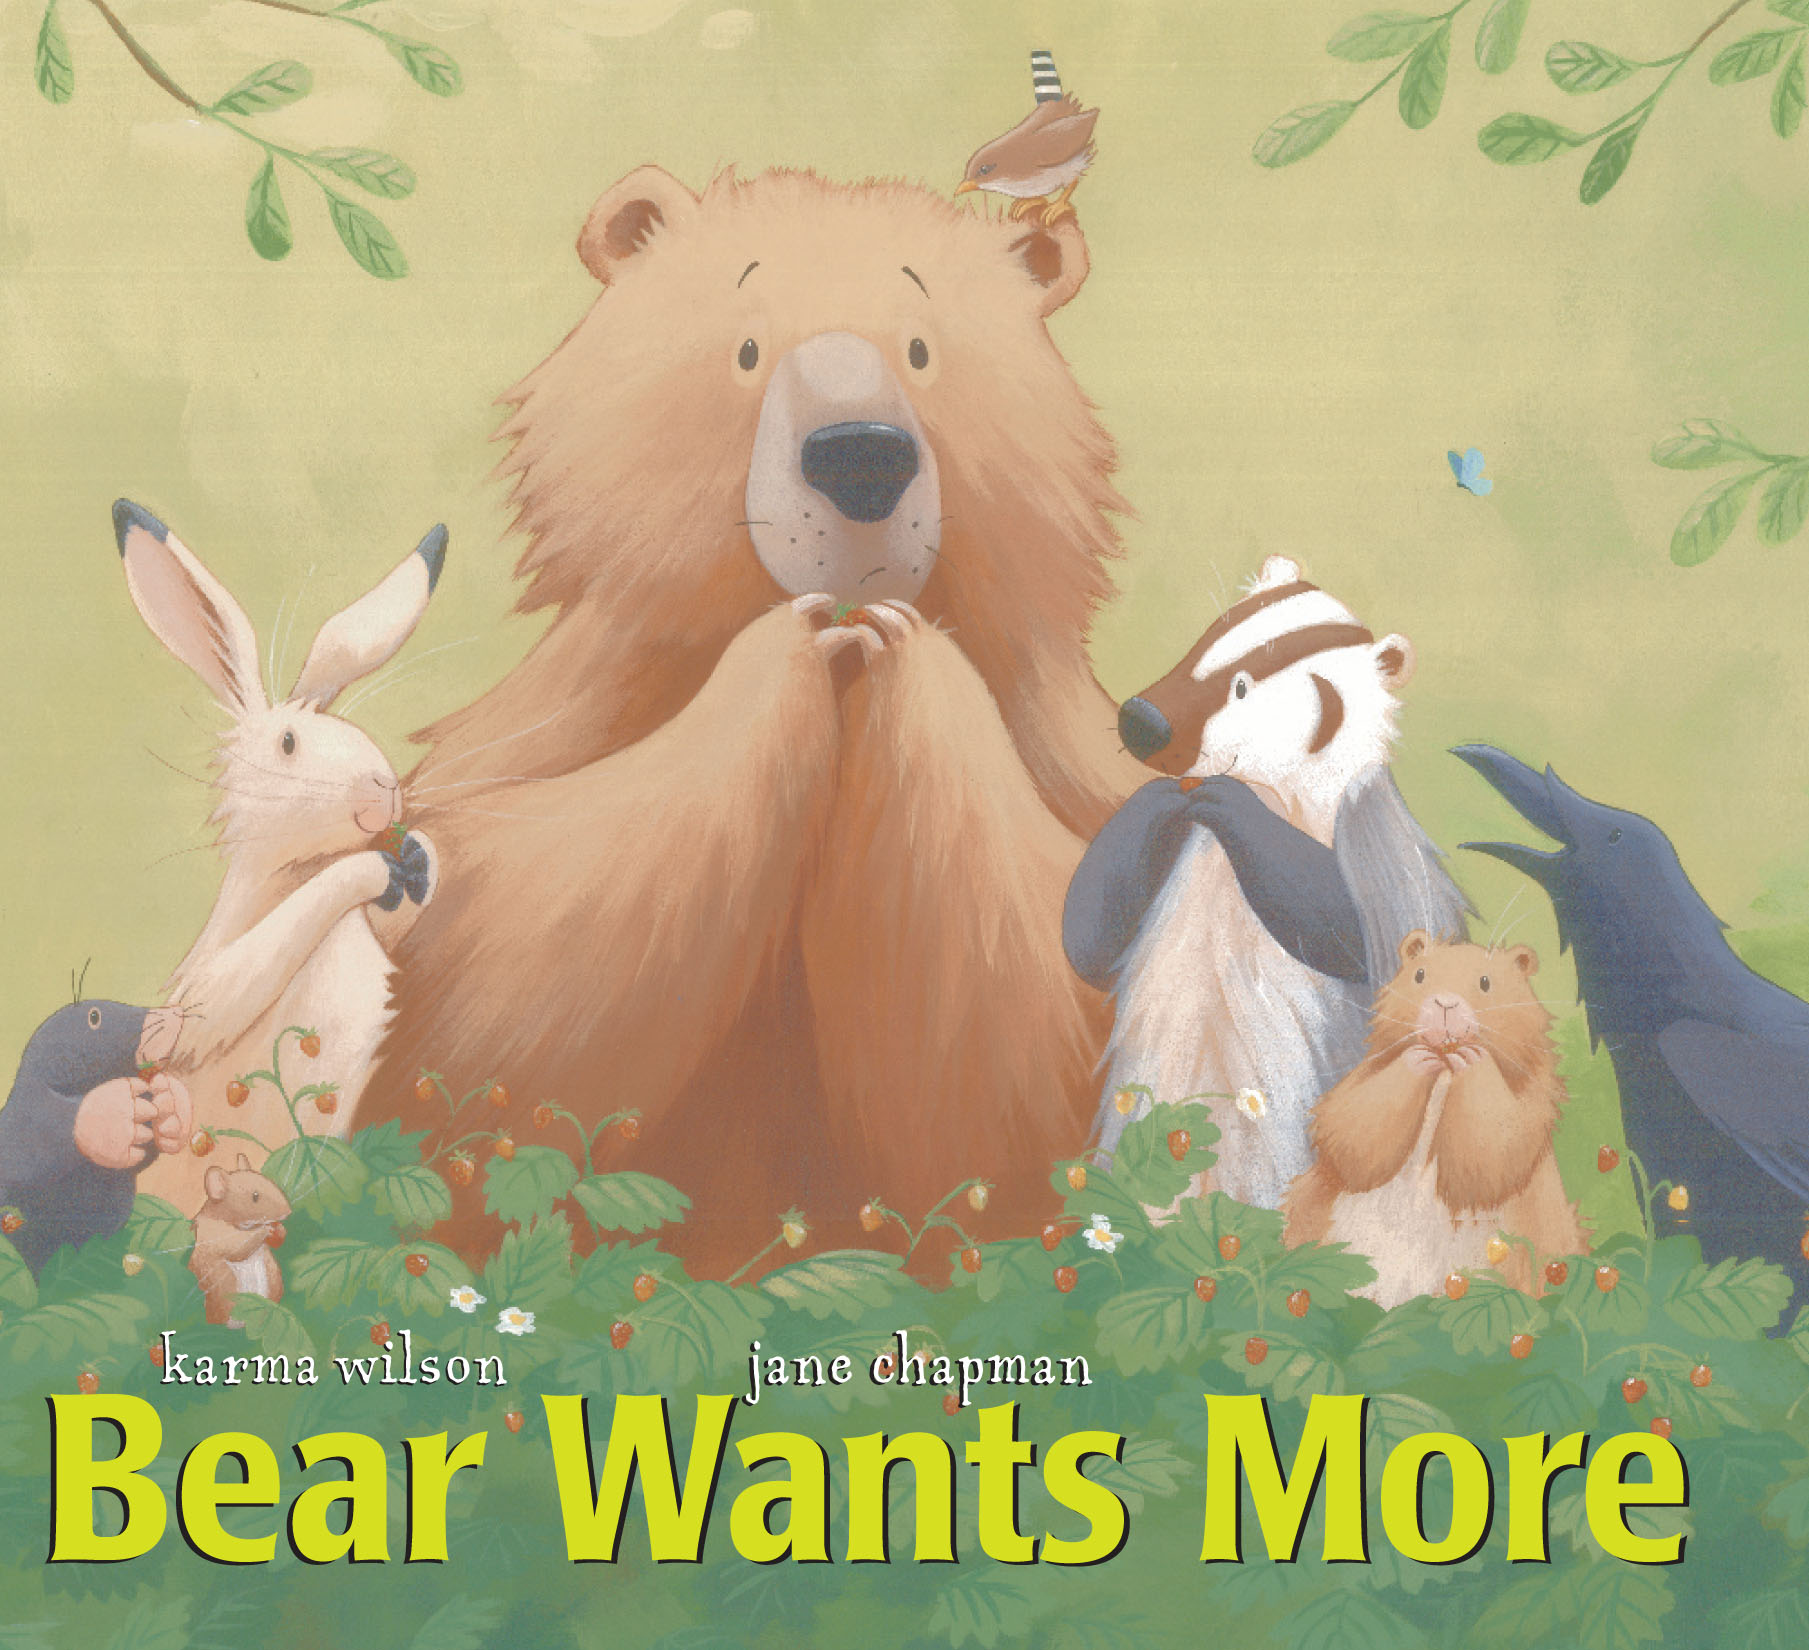 bear wants more book by karma wilson jane chapman official